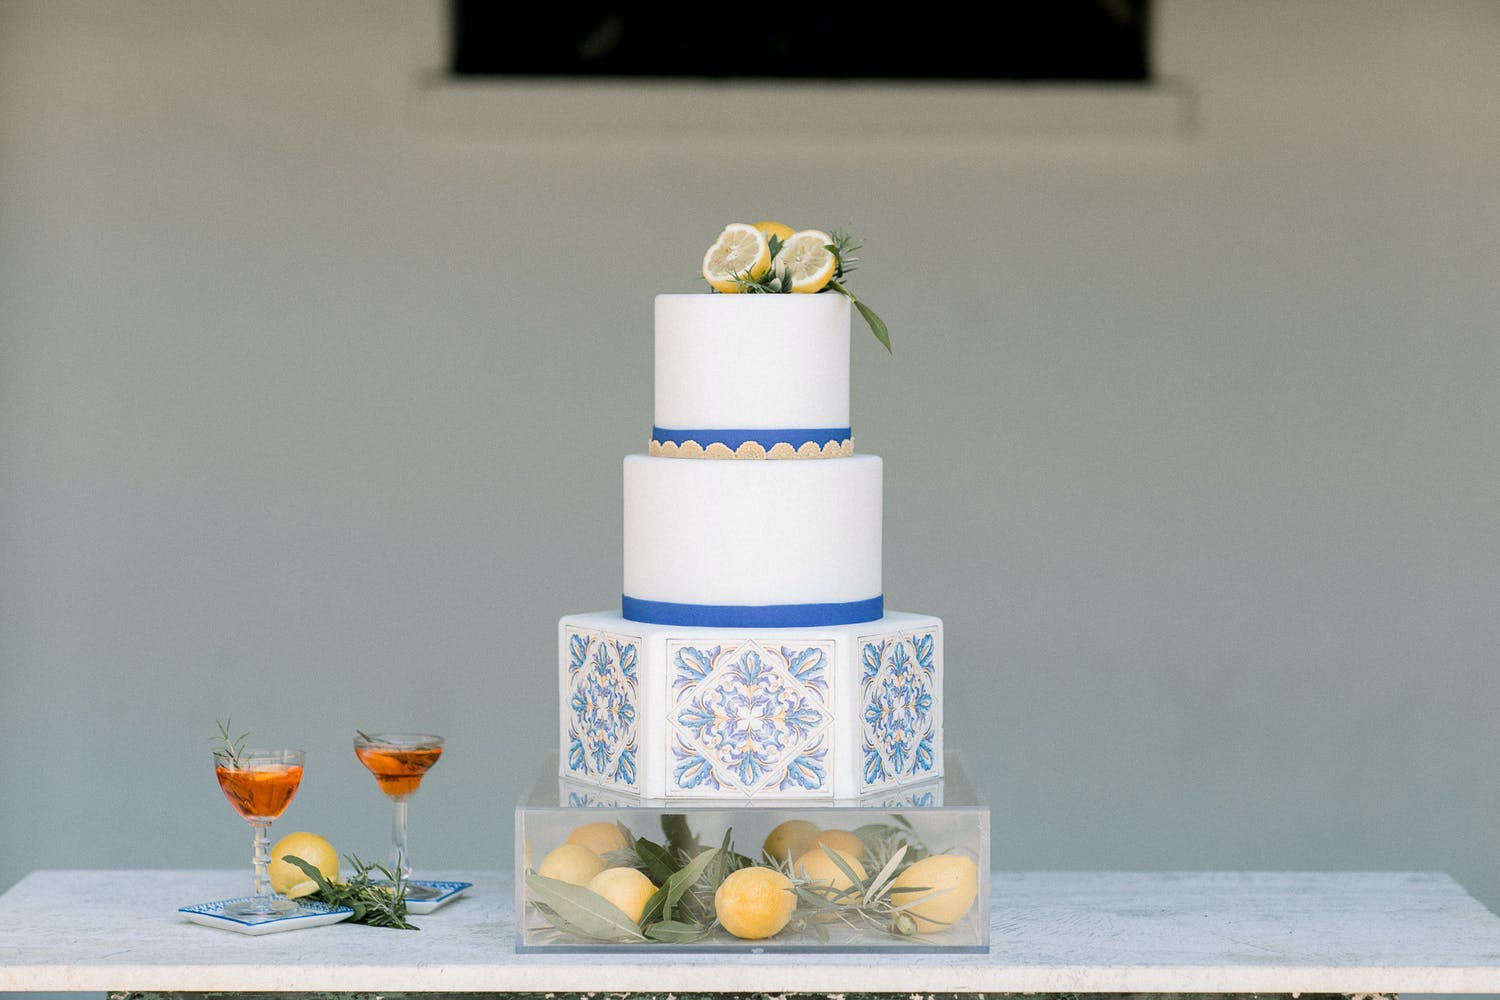 Three-tier wedding cake with a hexagon bottom tier and blue and white design on a lucite cake stand filled with lemons | PartySlate